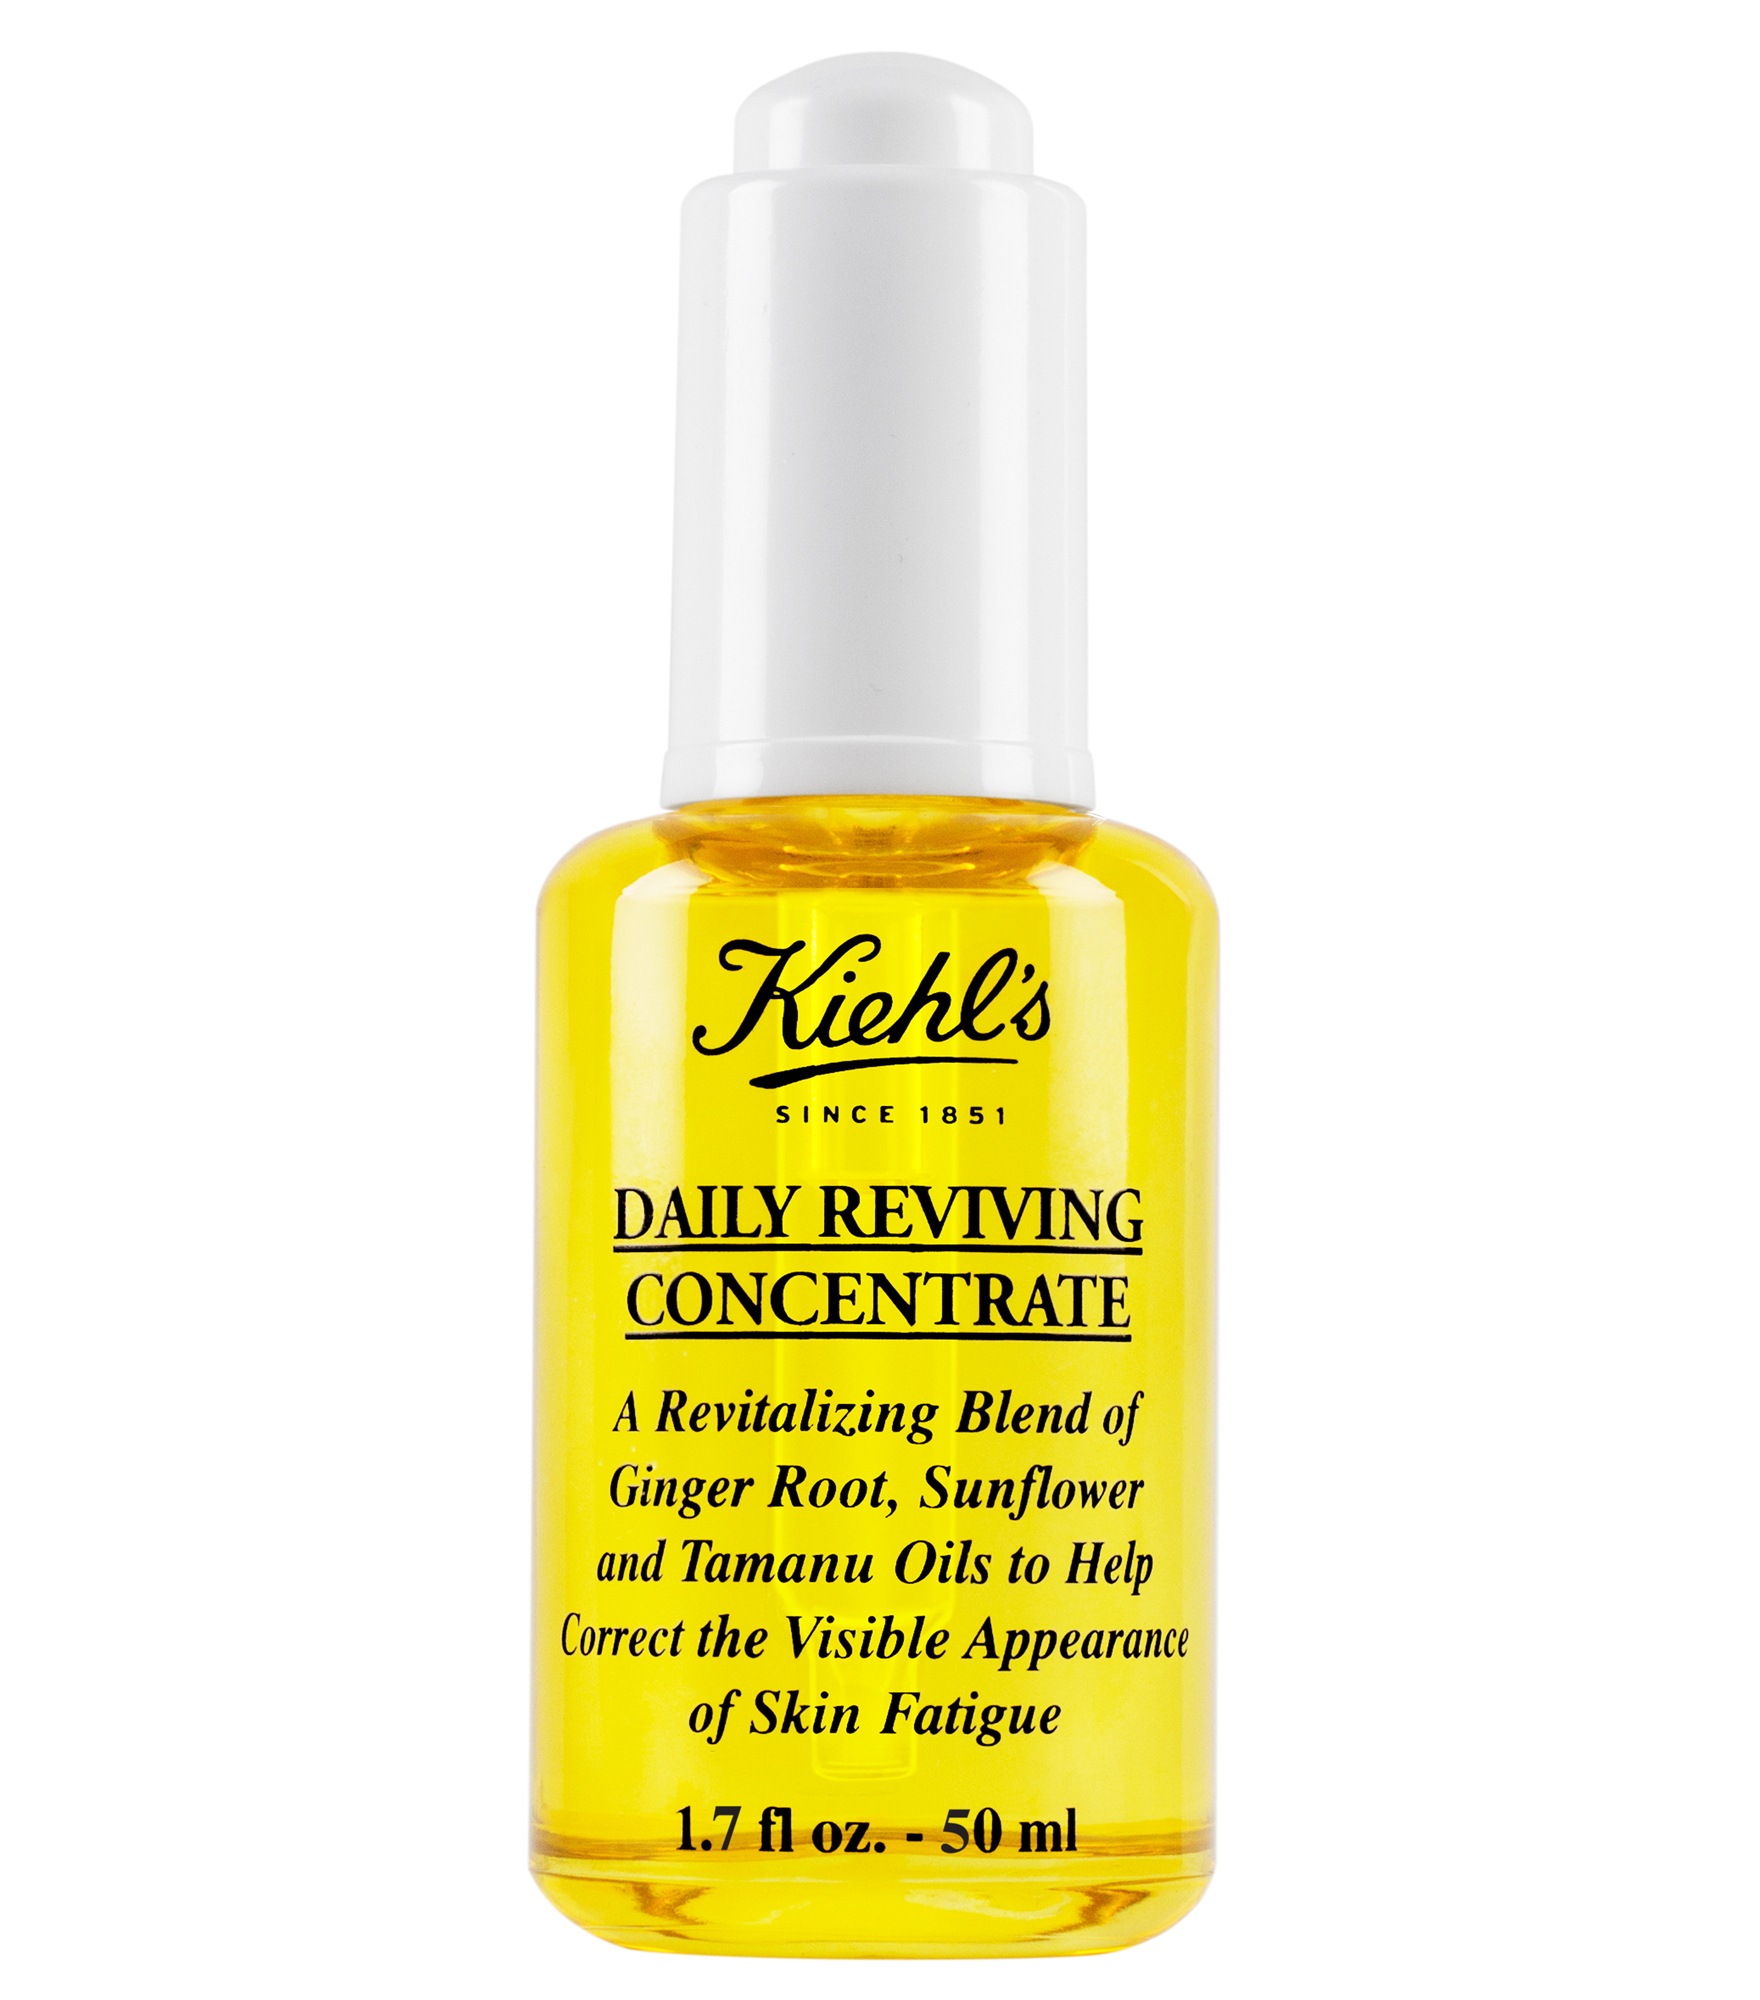 BeautyMe - Kiehl's Daily Reviving Concentrate - ulja